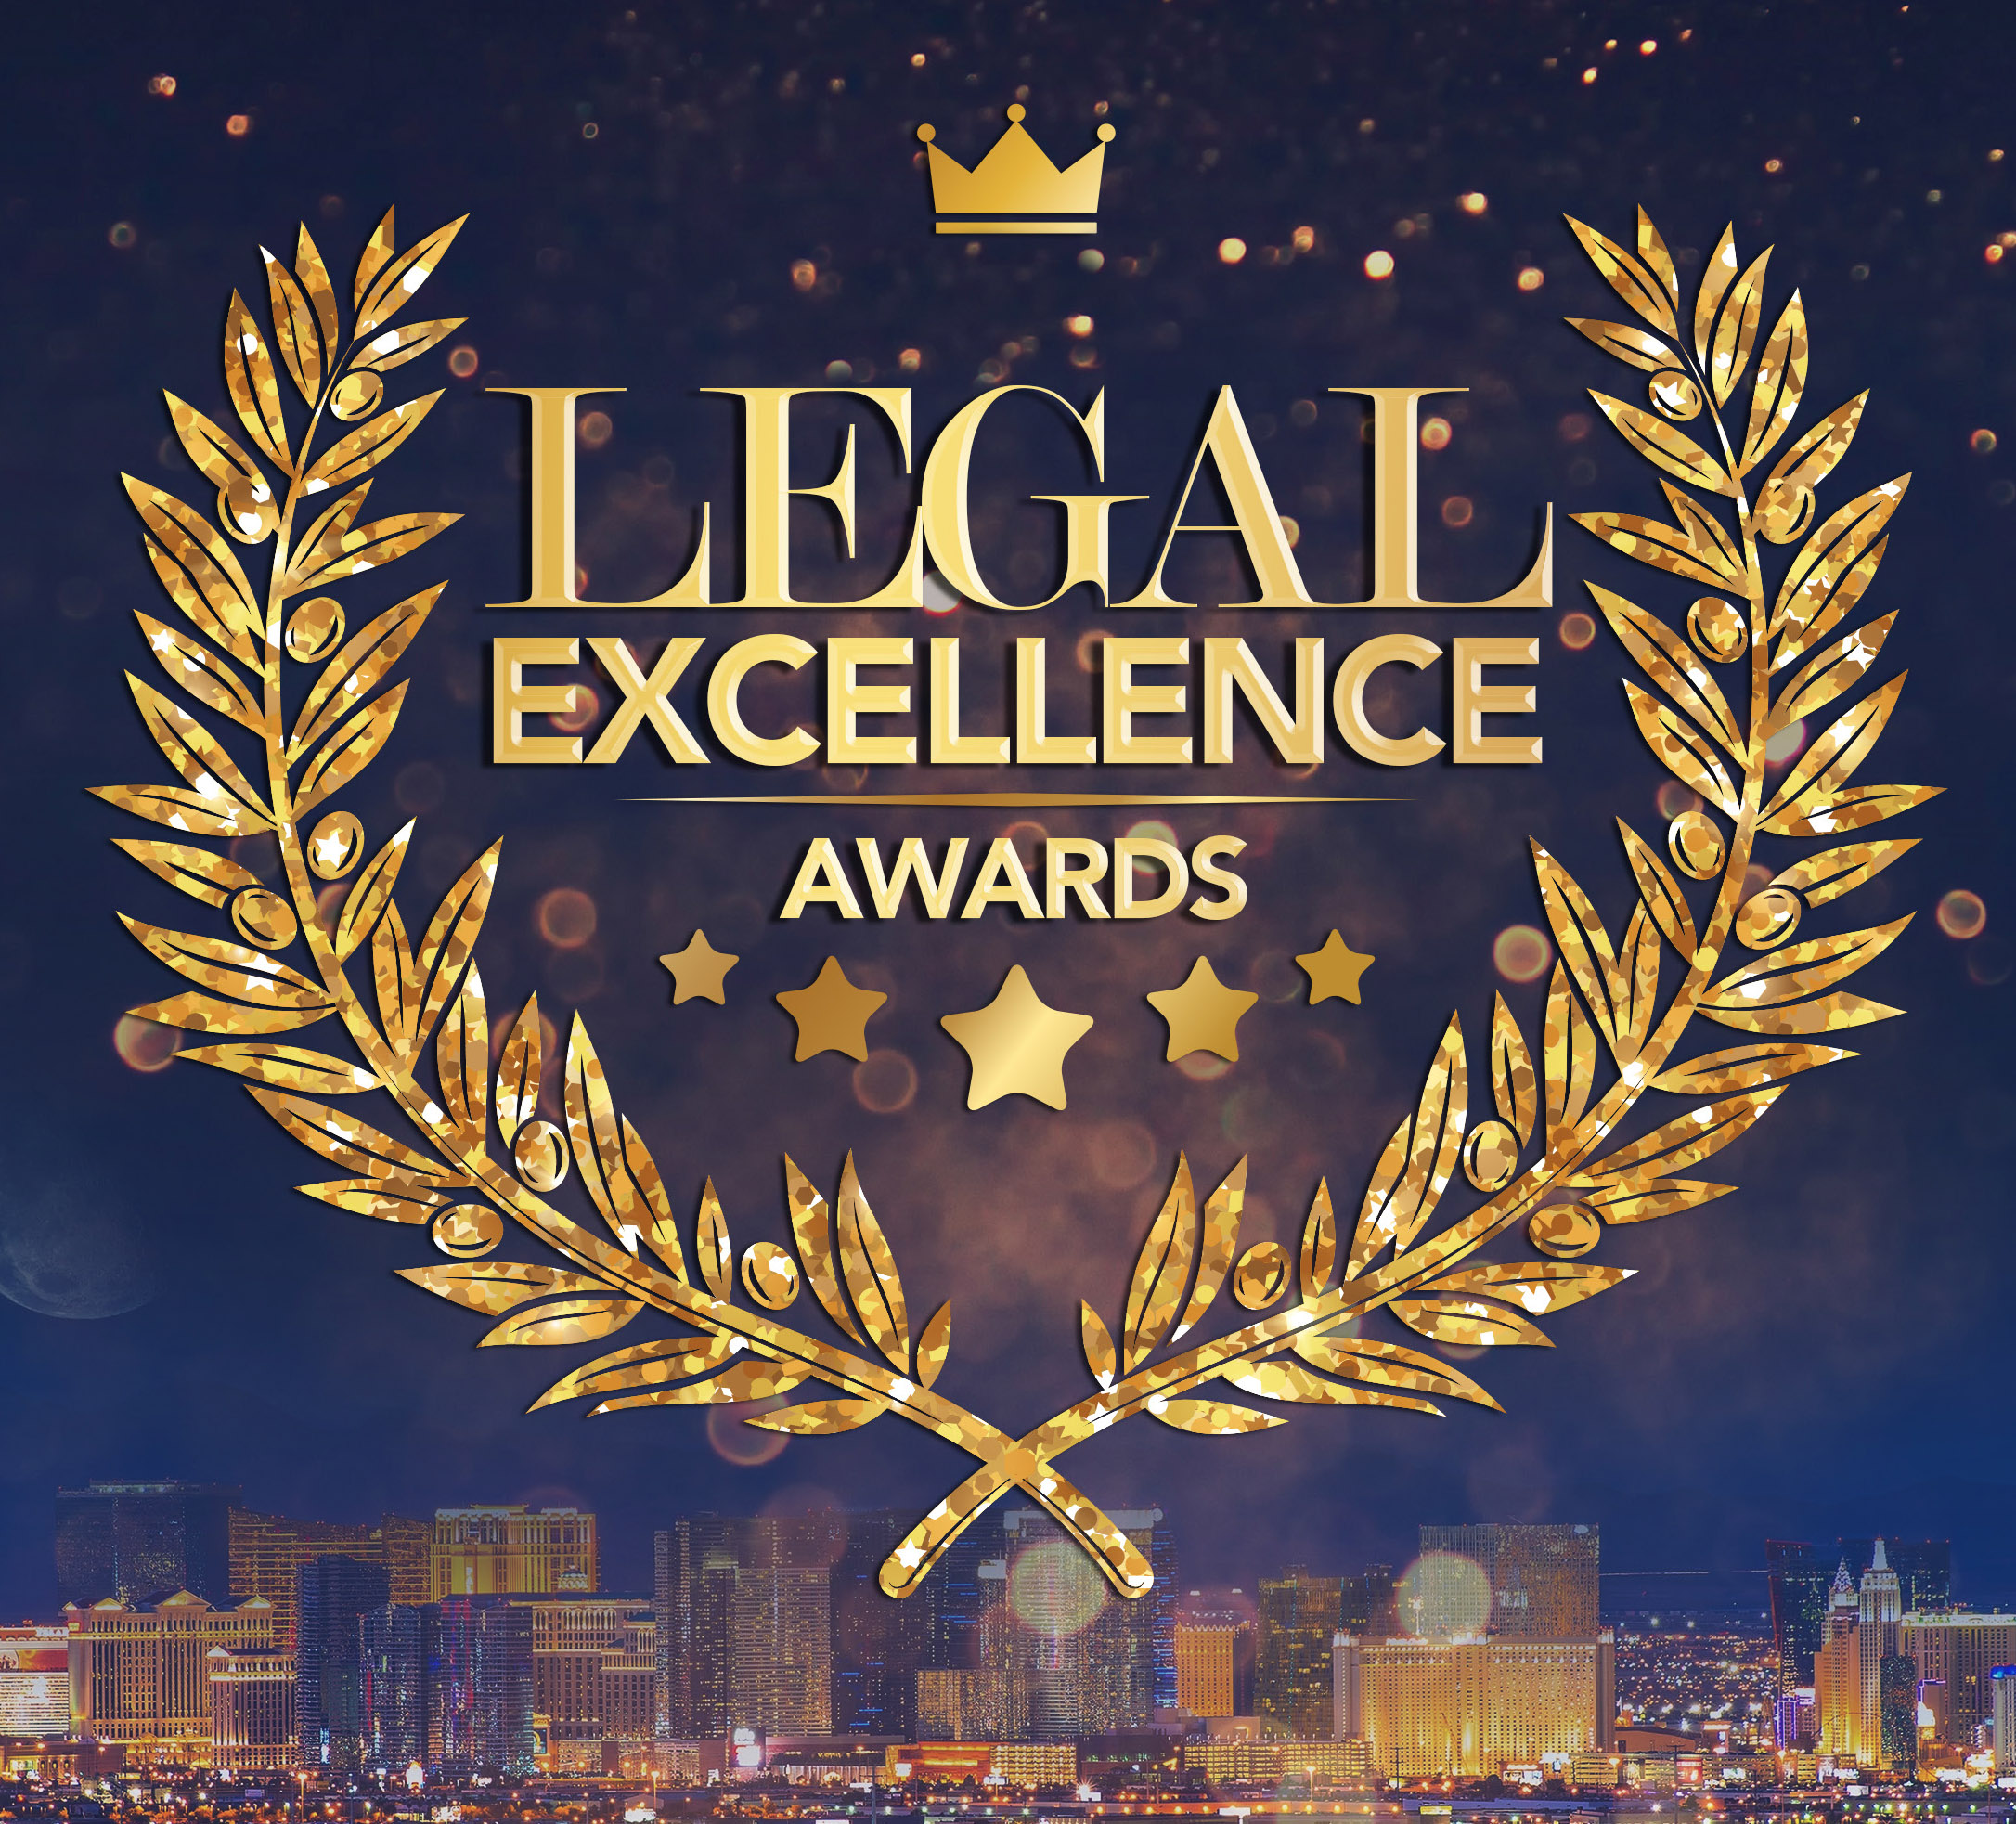 2017 Legal Excellence Awards